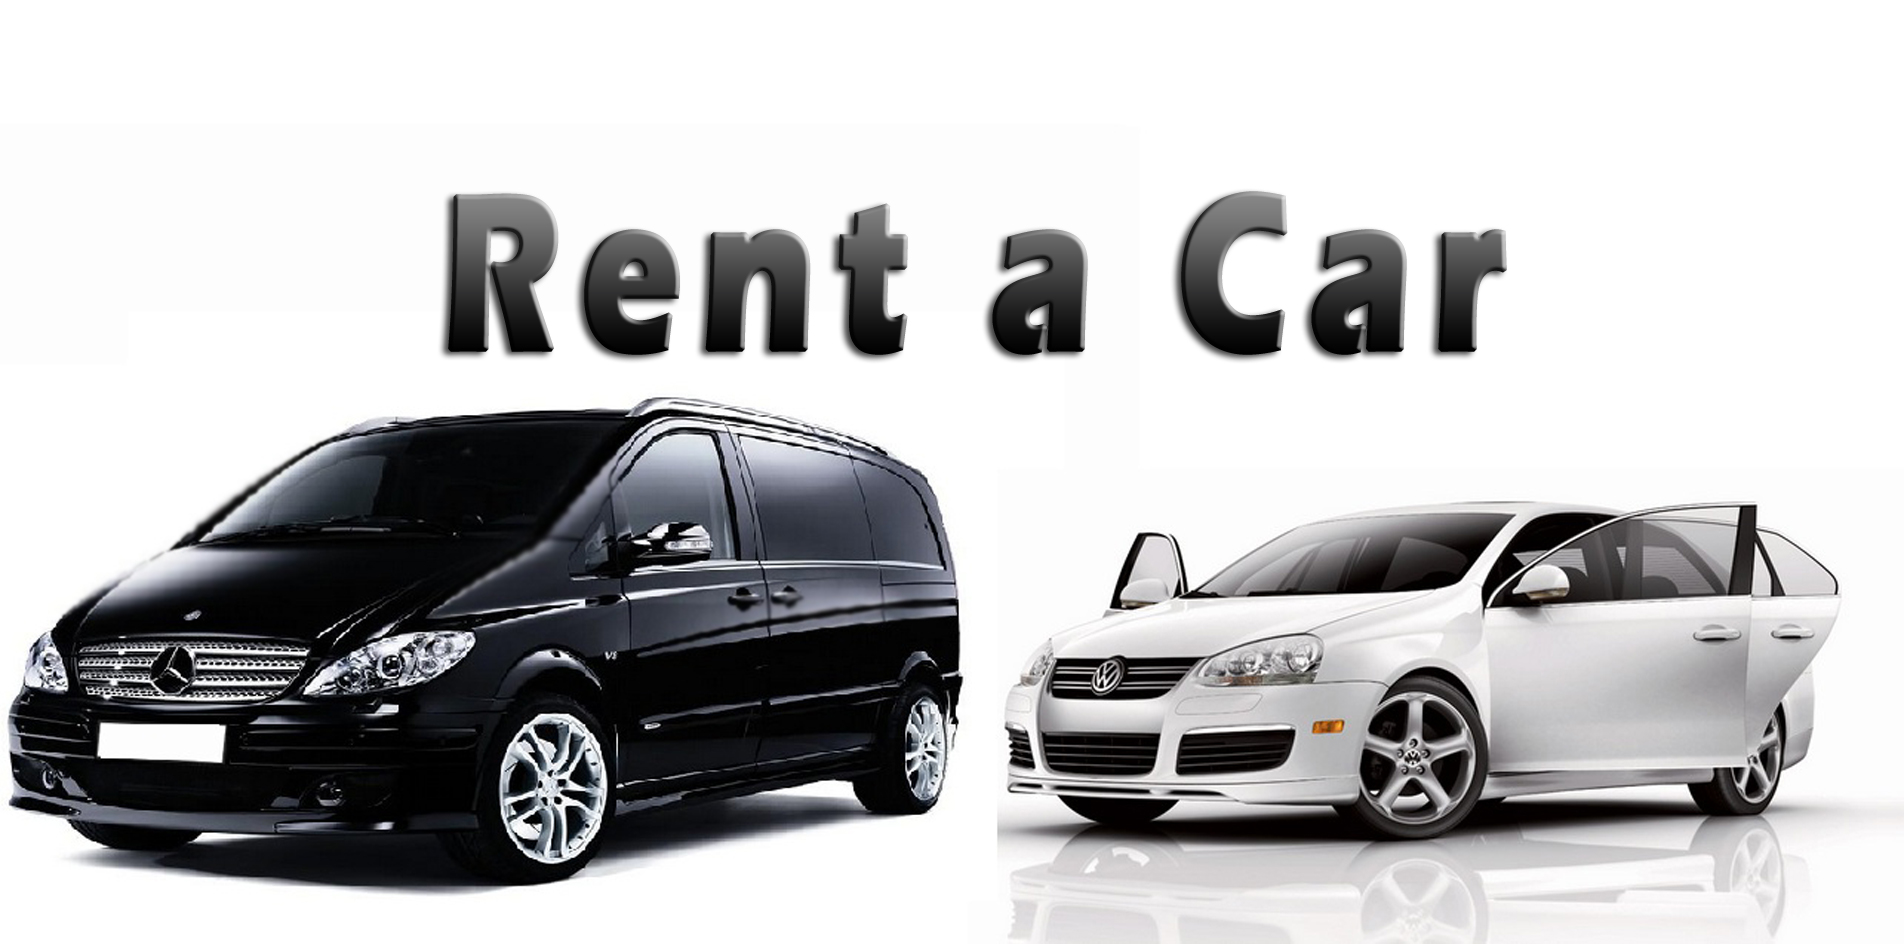 Where Can I Rent A Car >> Havalimanlari Rent A Car Antalya Haber